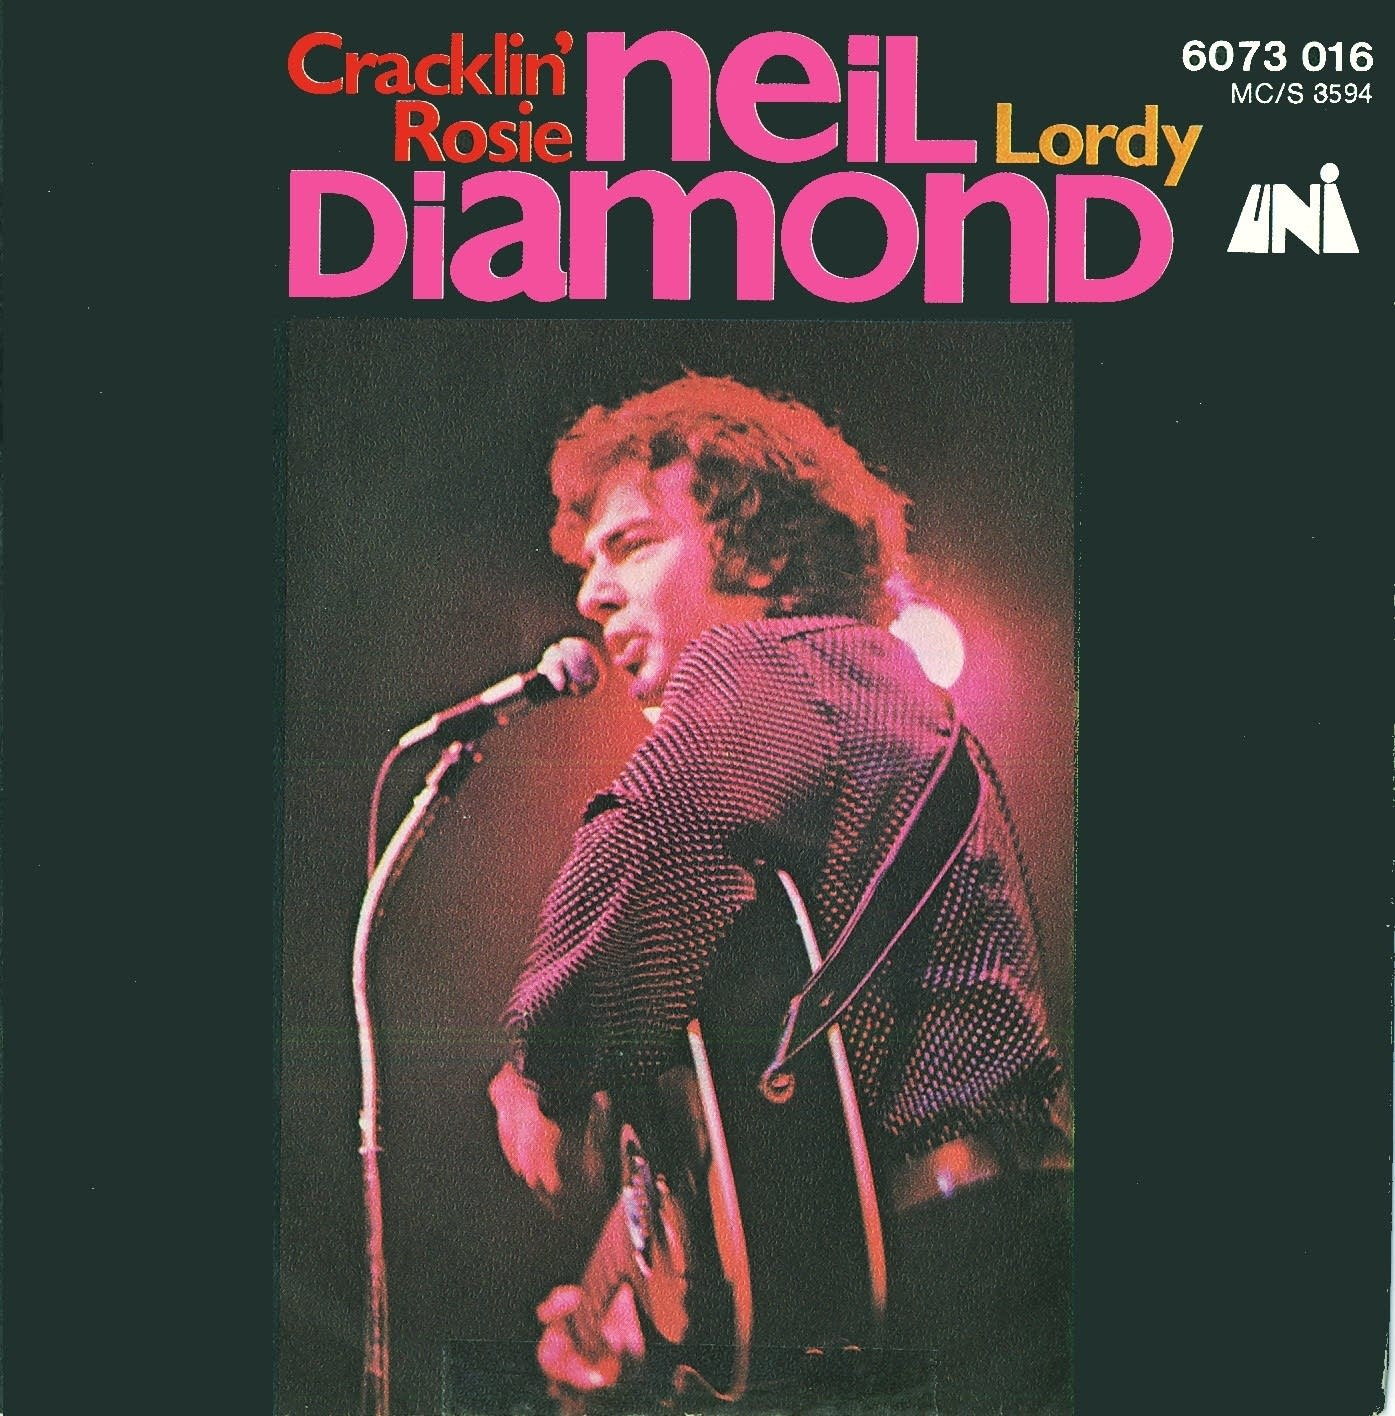 Neil Diamond Cracklin Rosie